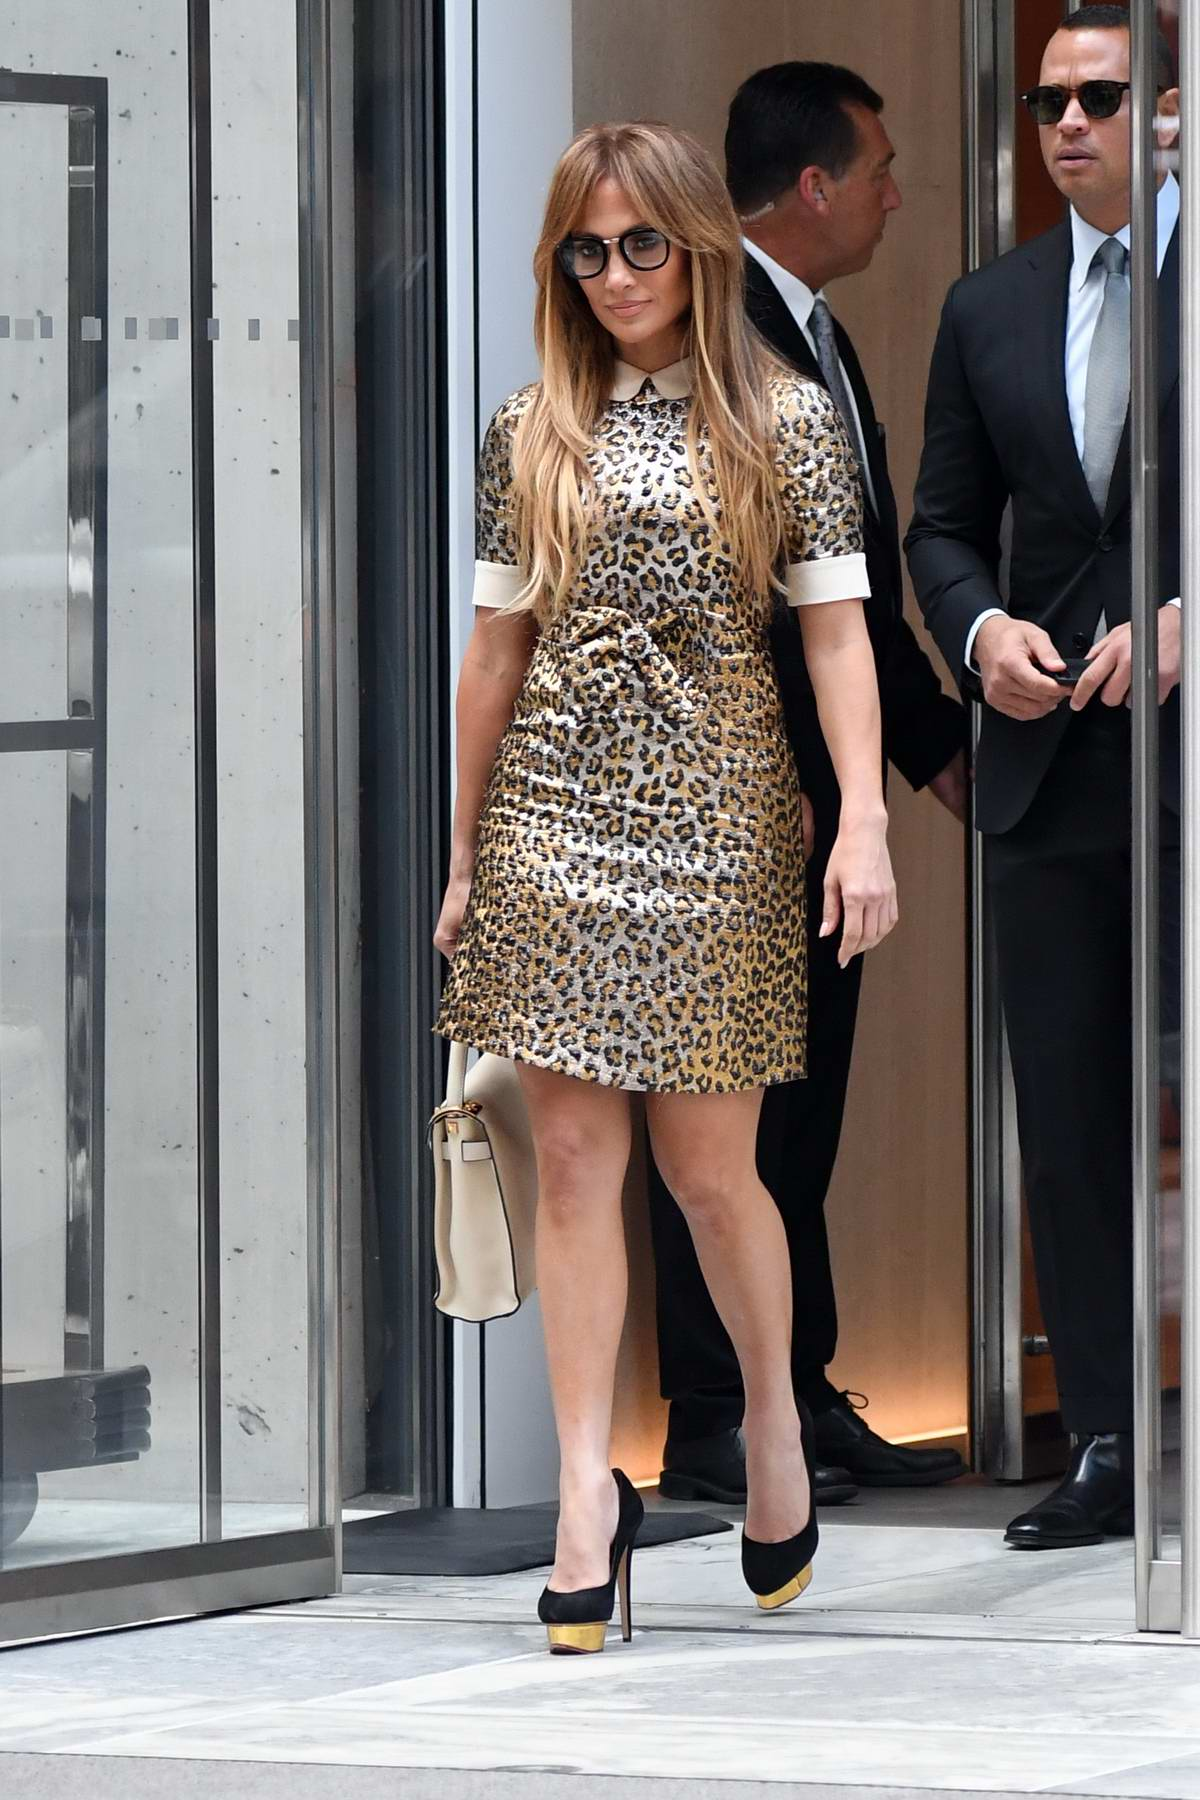 Jennifer Lopez in a leopard print dress heads out with Alex Rodriguez in New York